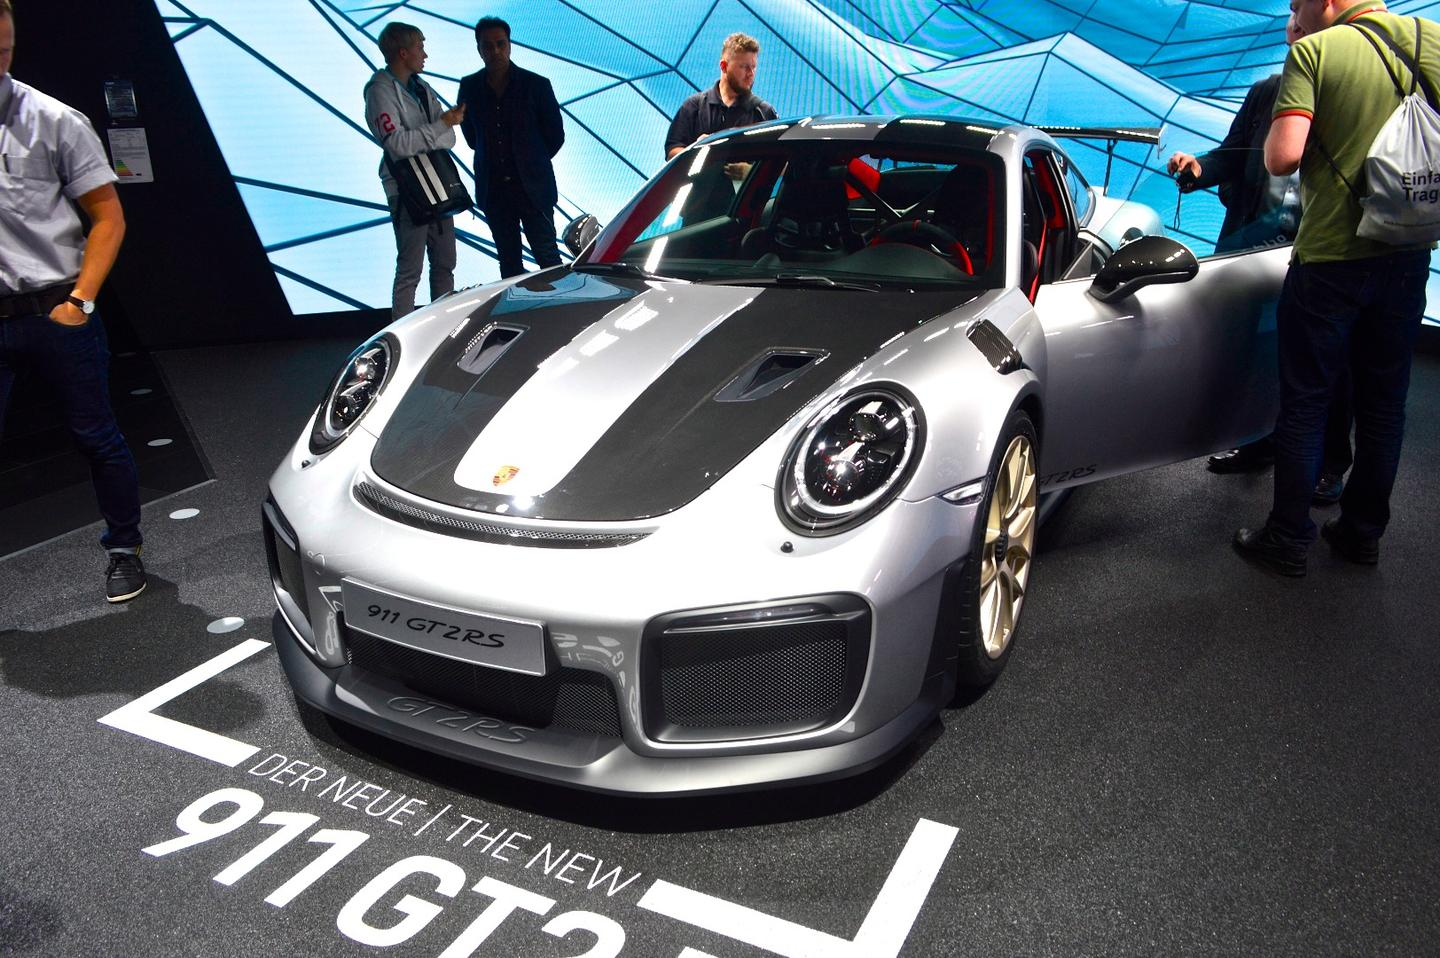 The new 911 GT2 RS on show in Geneva